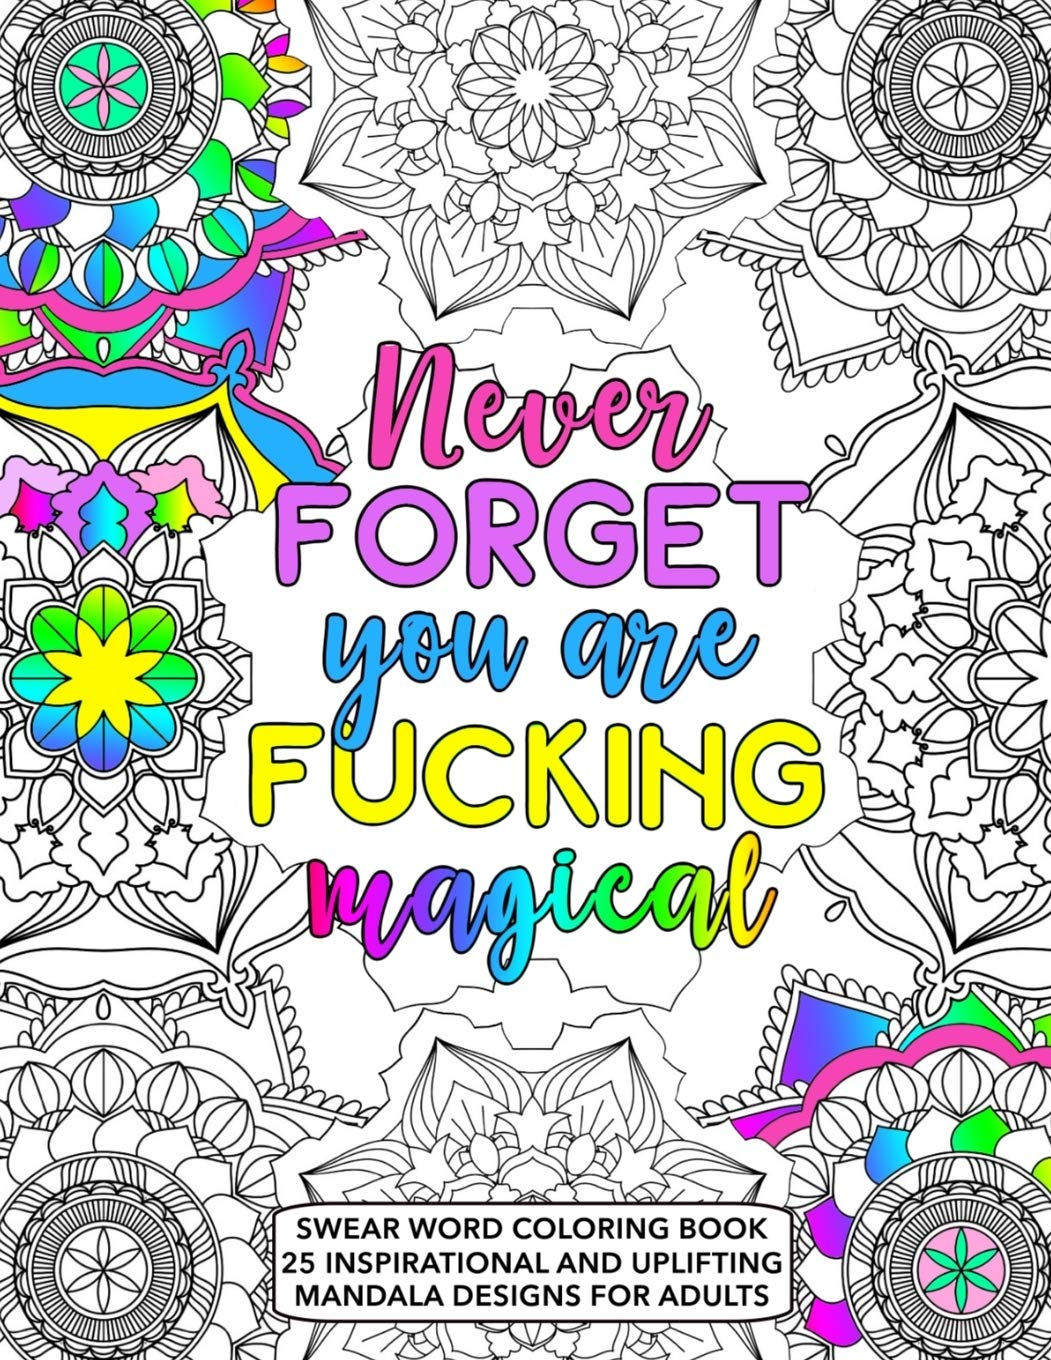 - Amazon.com: Never Forget You Are Fucking Magical: Swear Word